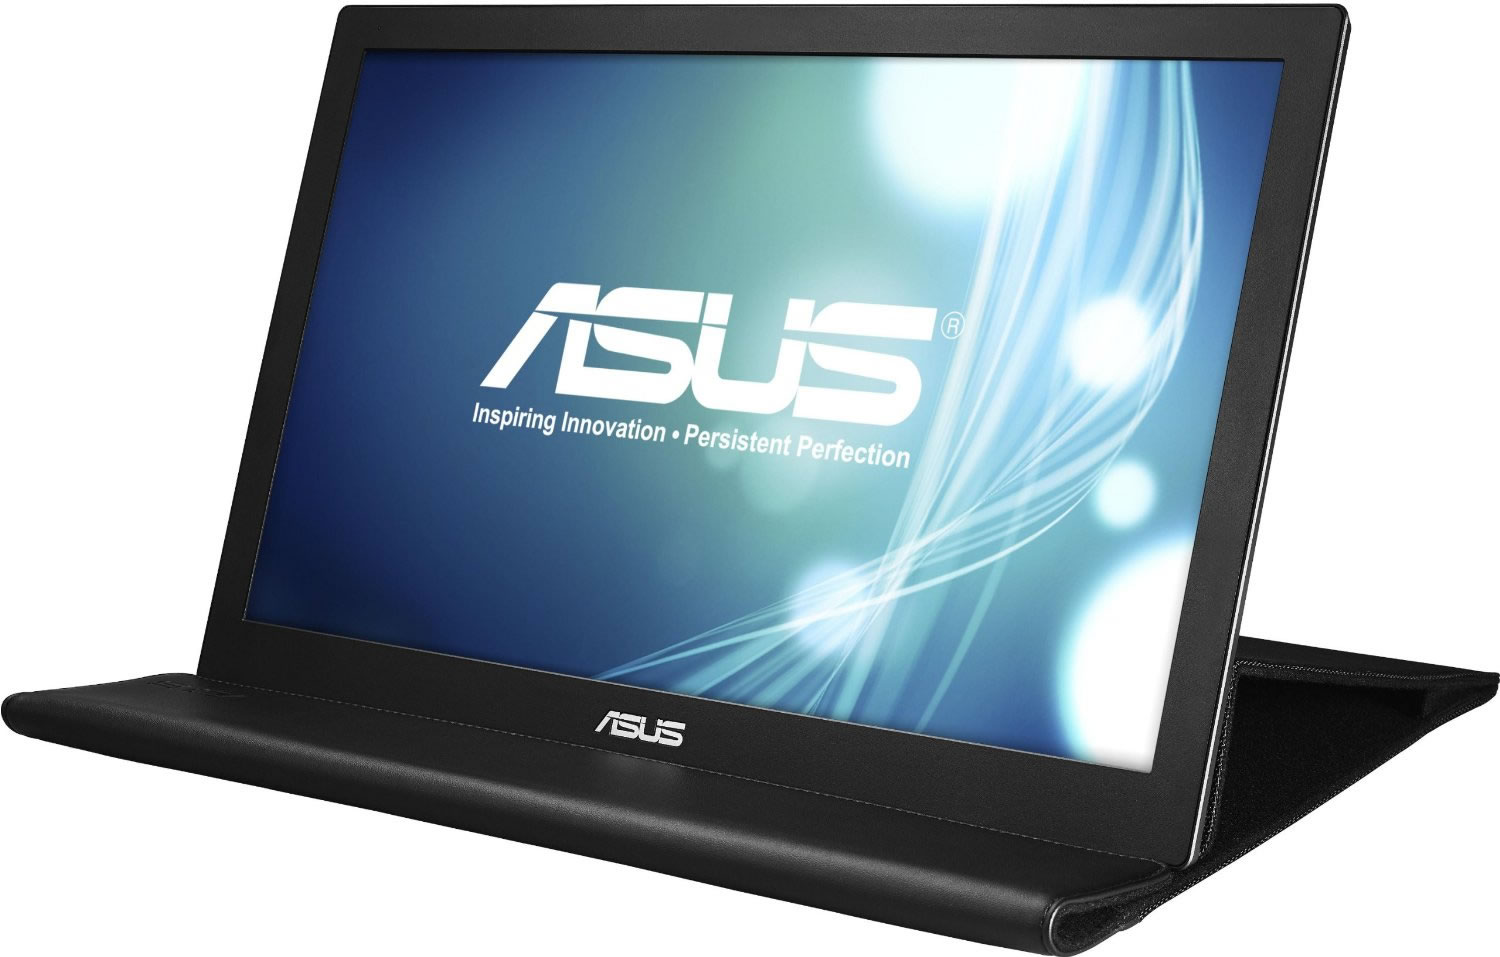 Asus MB168B 15.6 Inch Usb 3.0 Portable LED Screen